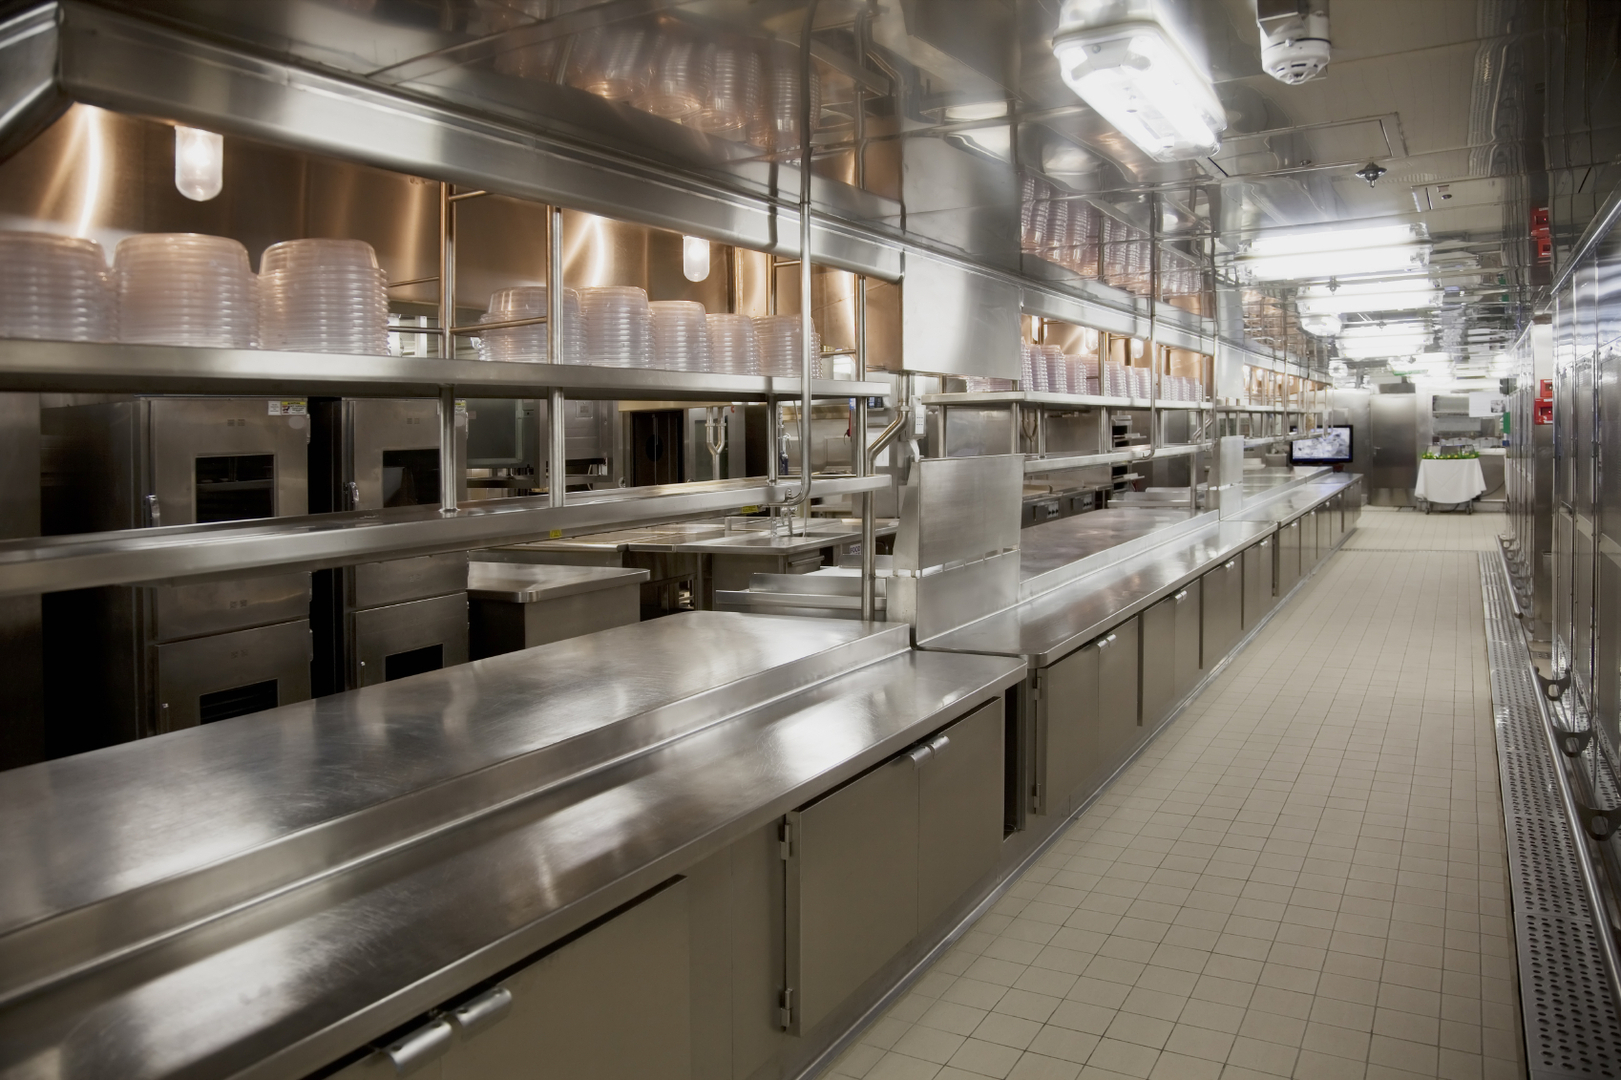 Commercial Kitchen Extraction, Ventilation and Air Conditioning Specialist in London